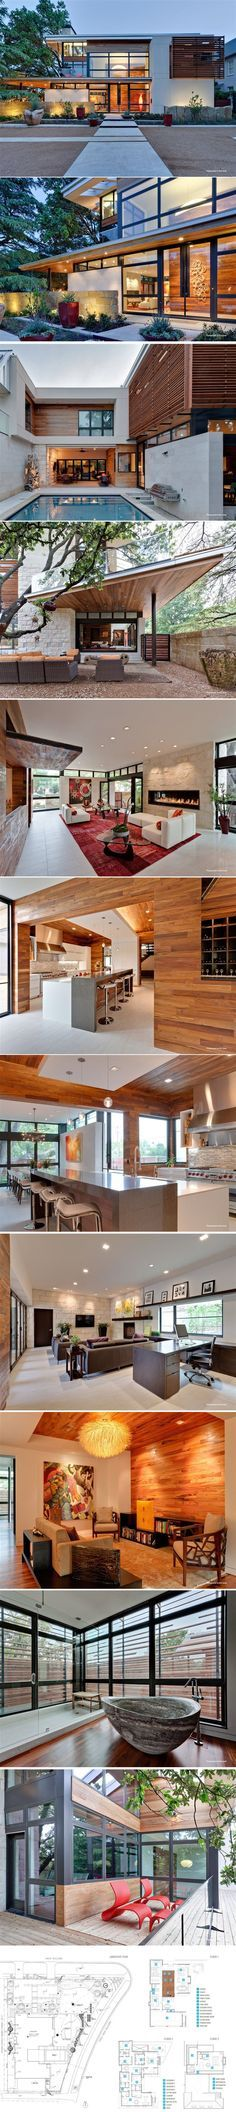 Best 25 Local architects ideas on Pinterest Modern architecture